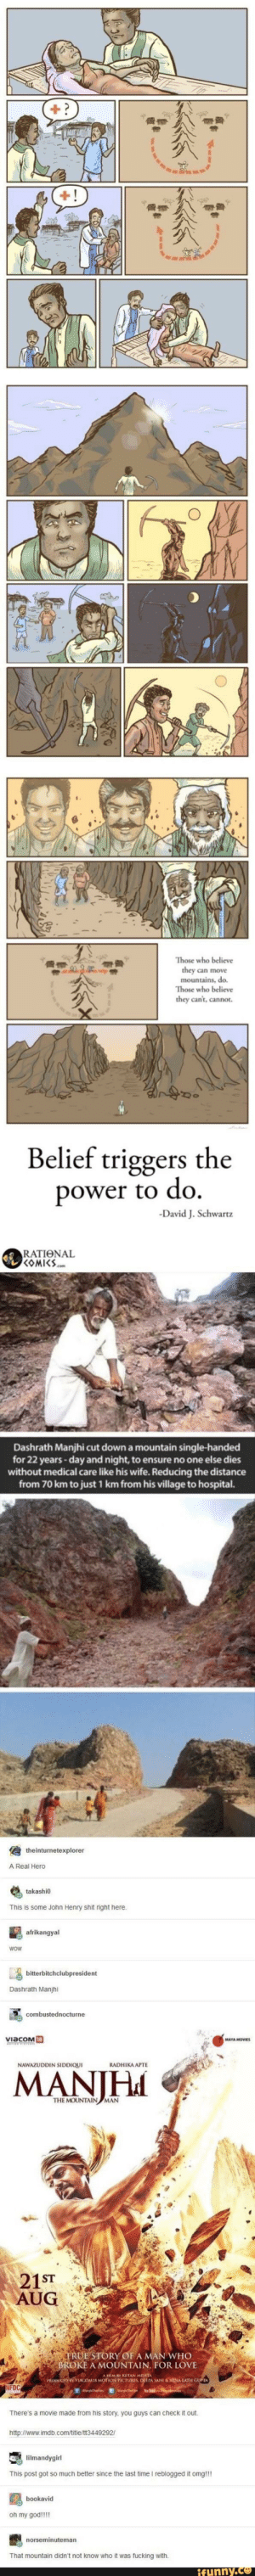 Saw a picture about Dashrath and felt like I should share this: +!  AM  Those who believe  they can move  mountains, do  Those who believe  they can't, cannot.  Belief triggers the  power to do  -David J.Schwartz  RATIONAL  KOMICS  Dashrath Manjhi cut down a mountain single-handed  for 22 years-day and night, to ensure no one else dies  without medical care like his wife. Reducing the distance  from 70 km to just 1 km from his village to hospital.  theinturnetexplorer  Real Hero  takashi0  This is some John Henry shit right here.  afrikangyal  WOW  bitterbitchclubpresident  Dashrath Manjhi  combustednocturne  viacoM  MAYA MOVIrs  NAWAZUDDIN SIDDIQUI  RADHIKA APTE  MANIH  THE MOUNTAIN MAN  21ST  AUG  TRUE STORY OF A MAN WHO  BROKE A MOUNTAIN. FOR LOVE  HoCIO HEVIAcOMIB MOTION FICTURES DELCA SAHIToNA LATH GUPTA  There's a movie made from his story, you quys can check it out.  http://www.imdb.com/title/tt3449292/  lilmandygirl  This post got so much better since the last time I reblogged it omg!!!  bookayid  oh my god!!!!  norseminuteman  That mountain didn't not know who it was fucking with.  REunny.co Saw a picture about Dashrath and felt like I should share this